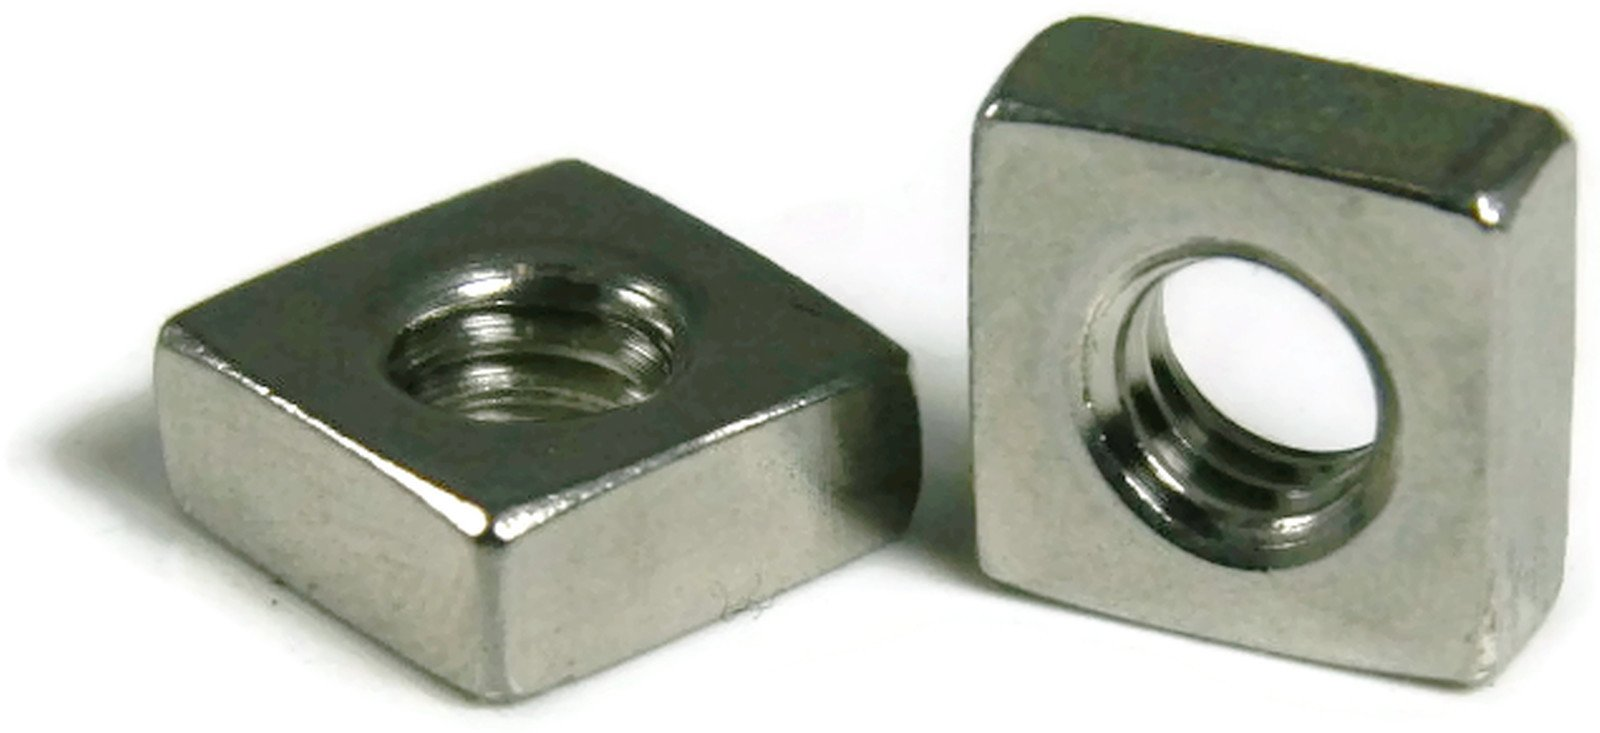 Square Nut 18-8 Stainless Steel - 1/4-20 Qty-1,000 by RAW PRODUCTS CORP